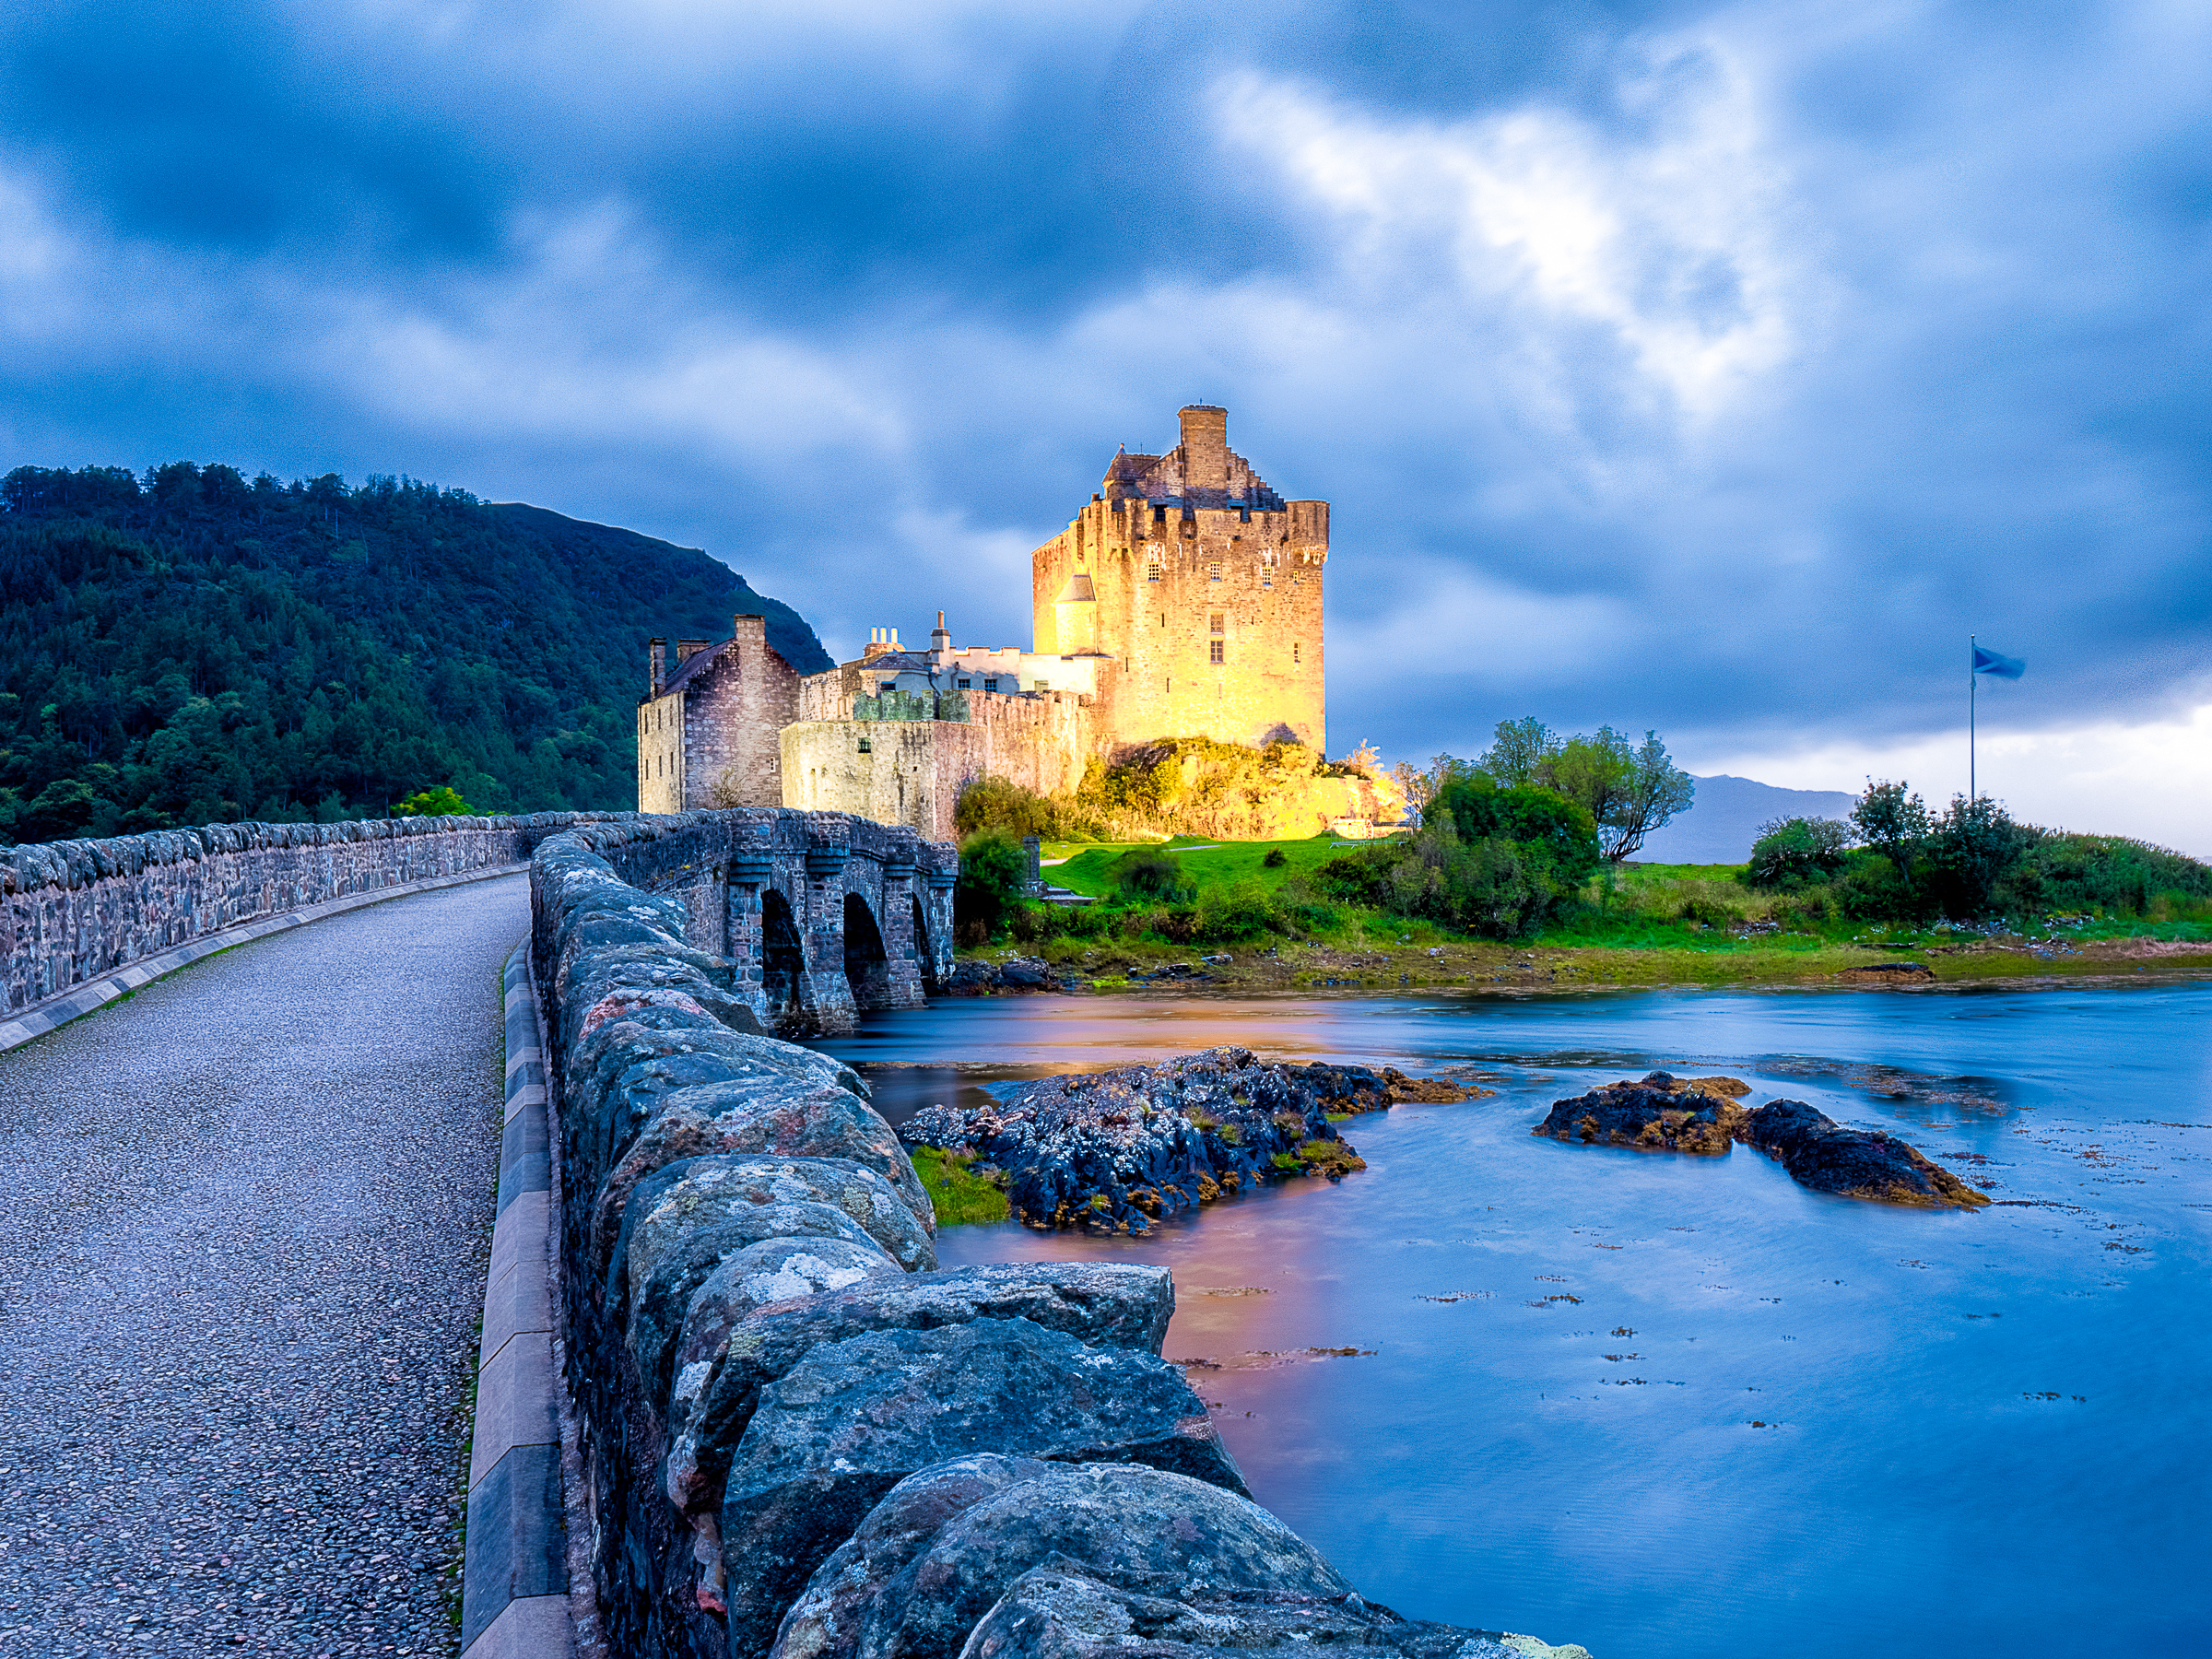 The famous Eilean Donan Castle at sunset in Scotland